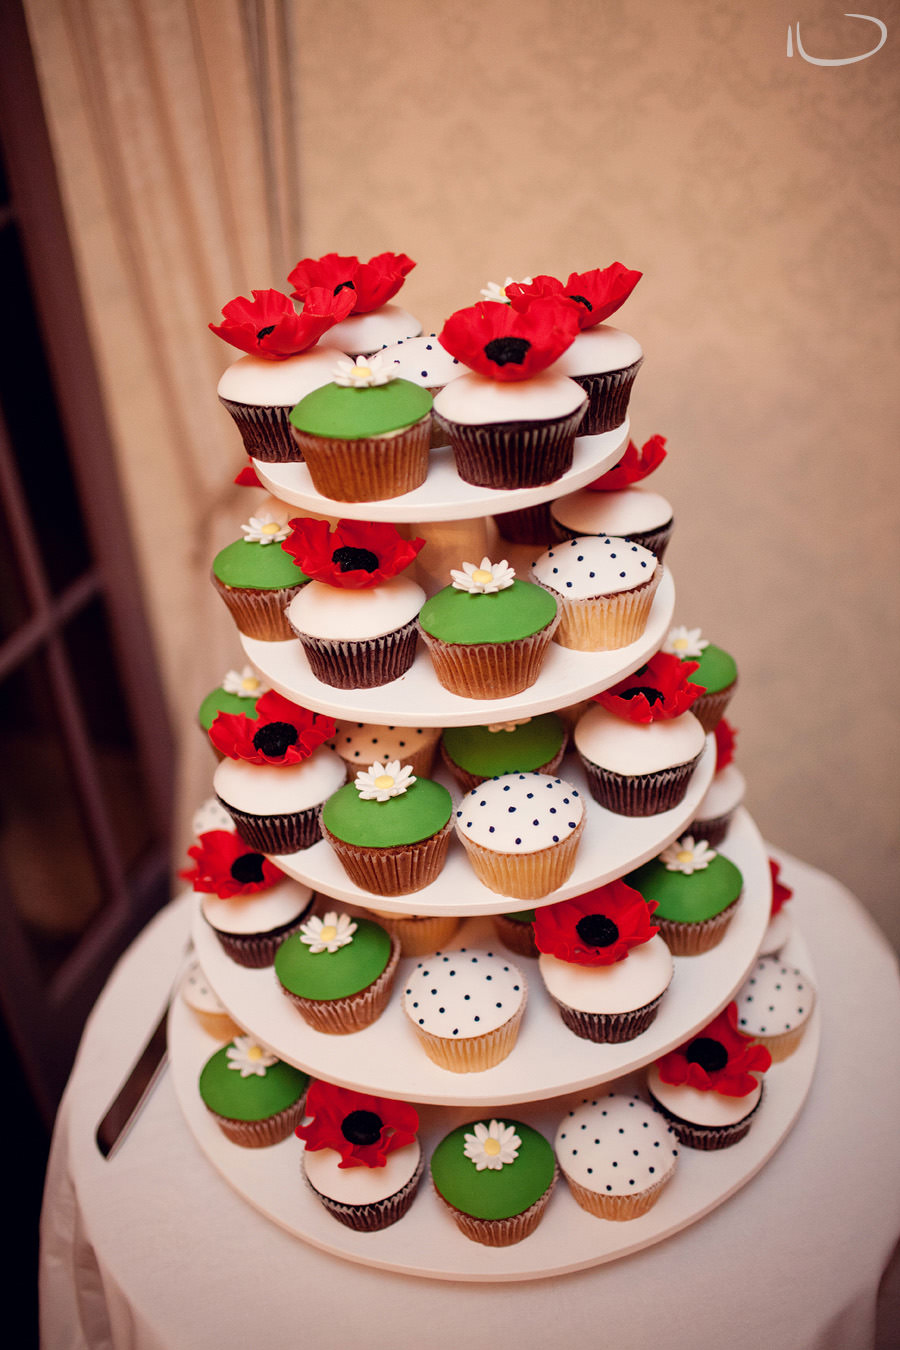 Gunners Barracks Wedding Photographer: Cupcake wedding cake